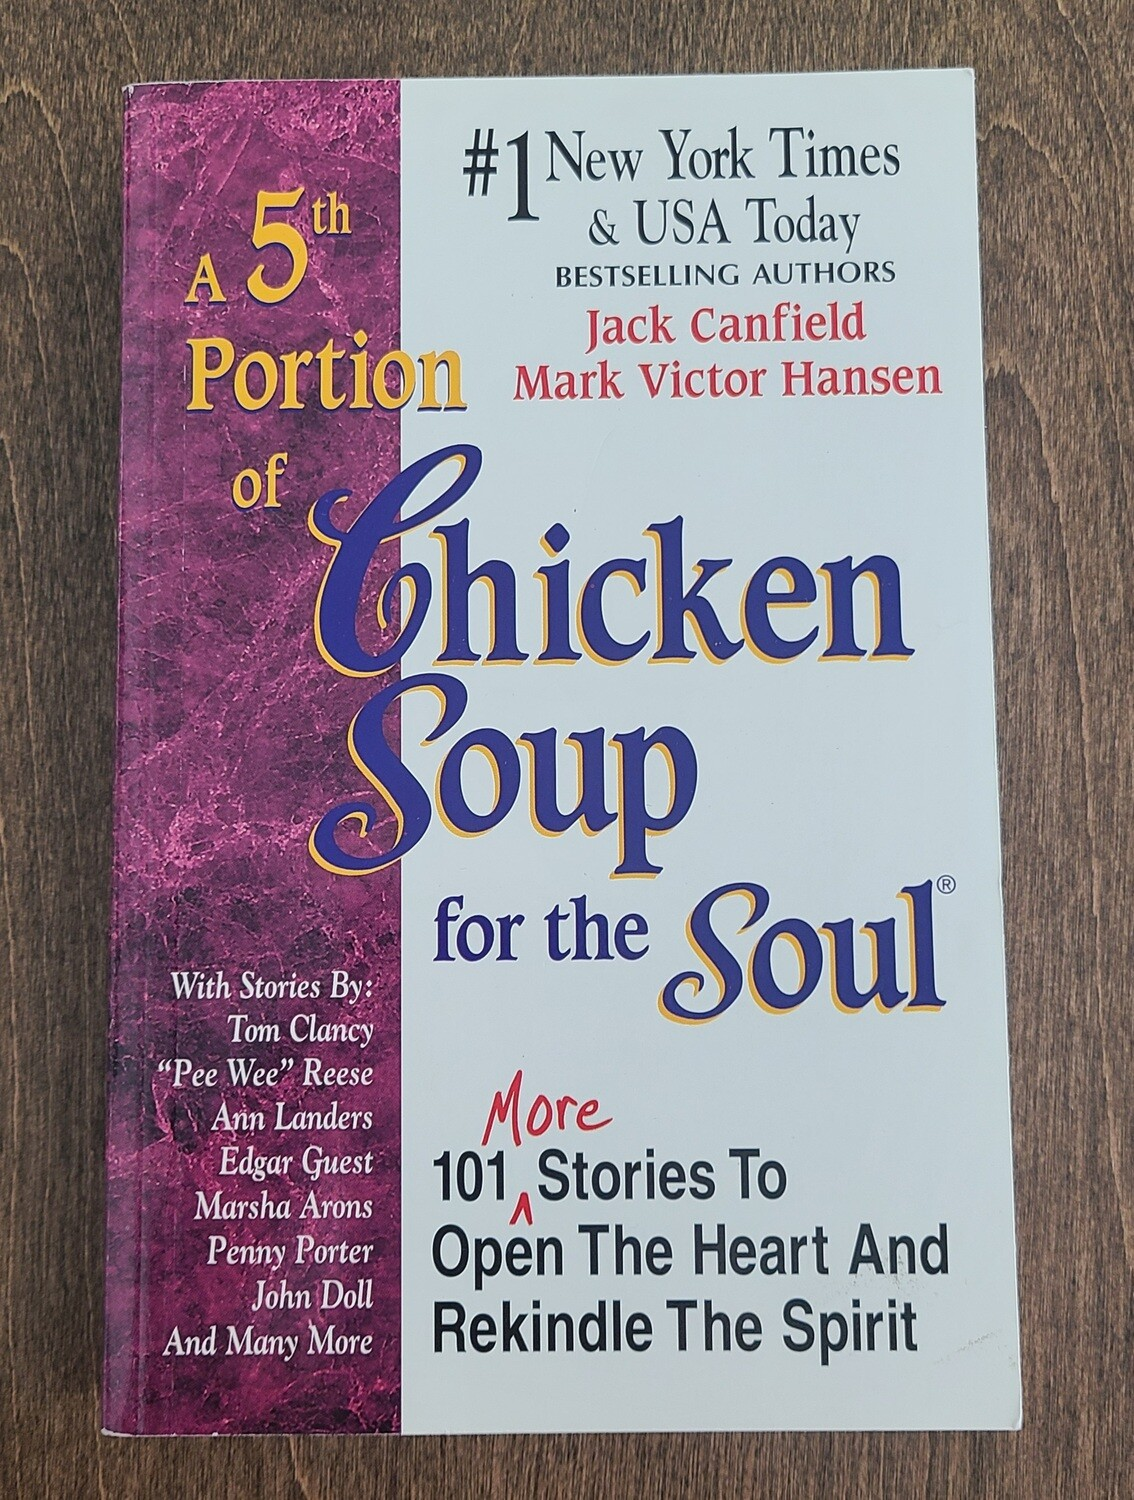 A 5th Portion of Chicken Soup for the Soul by Jack Canfield and Mark Victor Hansen